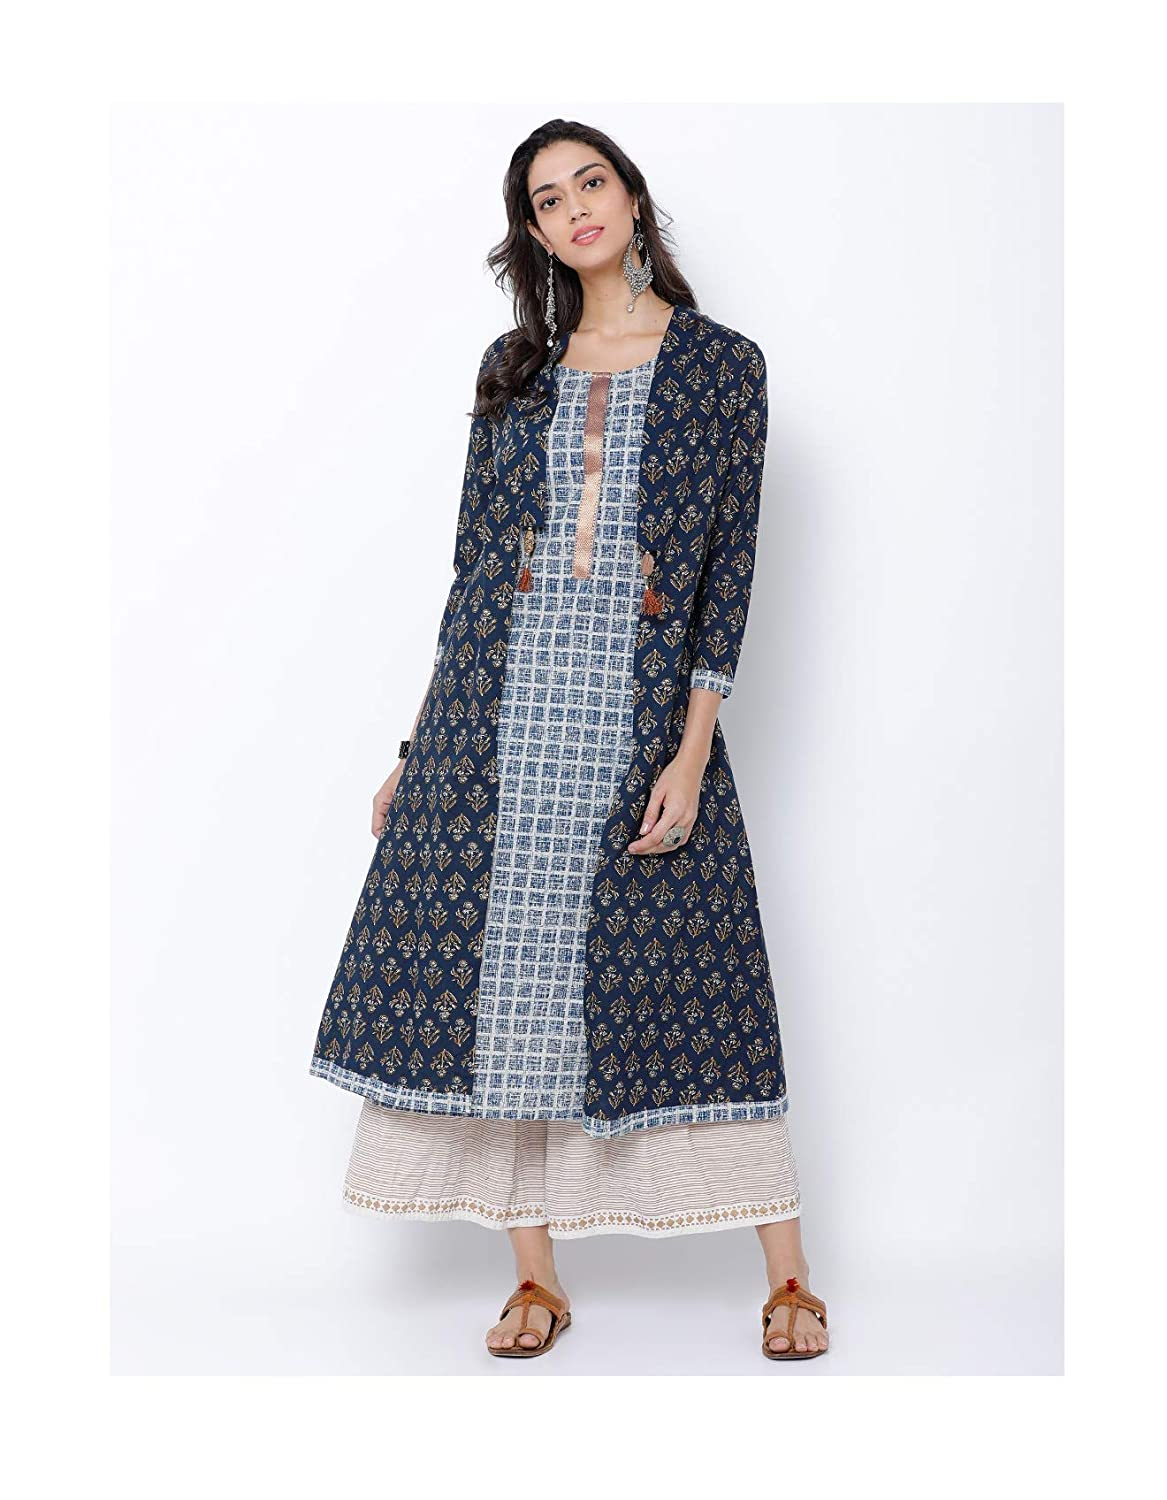 80839d19e7e12 Amazon.com  HIRAL DESIGNER MALL Plus Size Indian Kurti Blue Printed A-Line  Kurta  Clothing